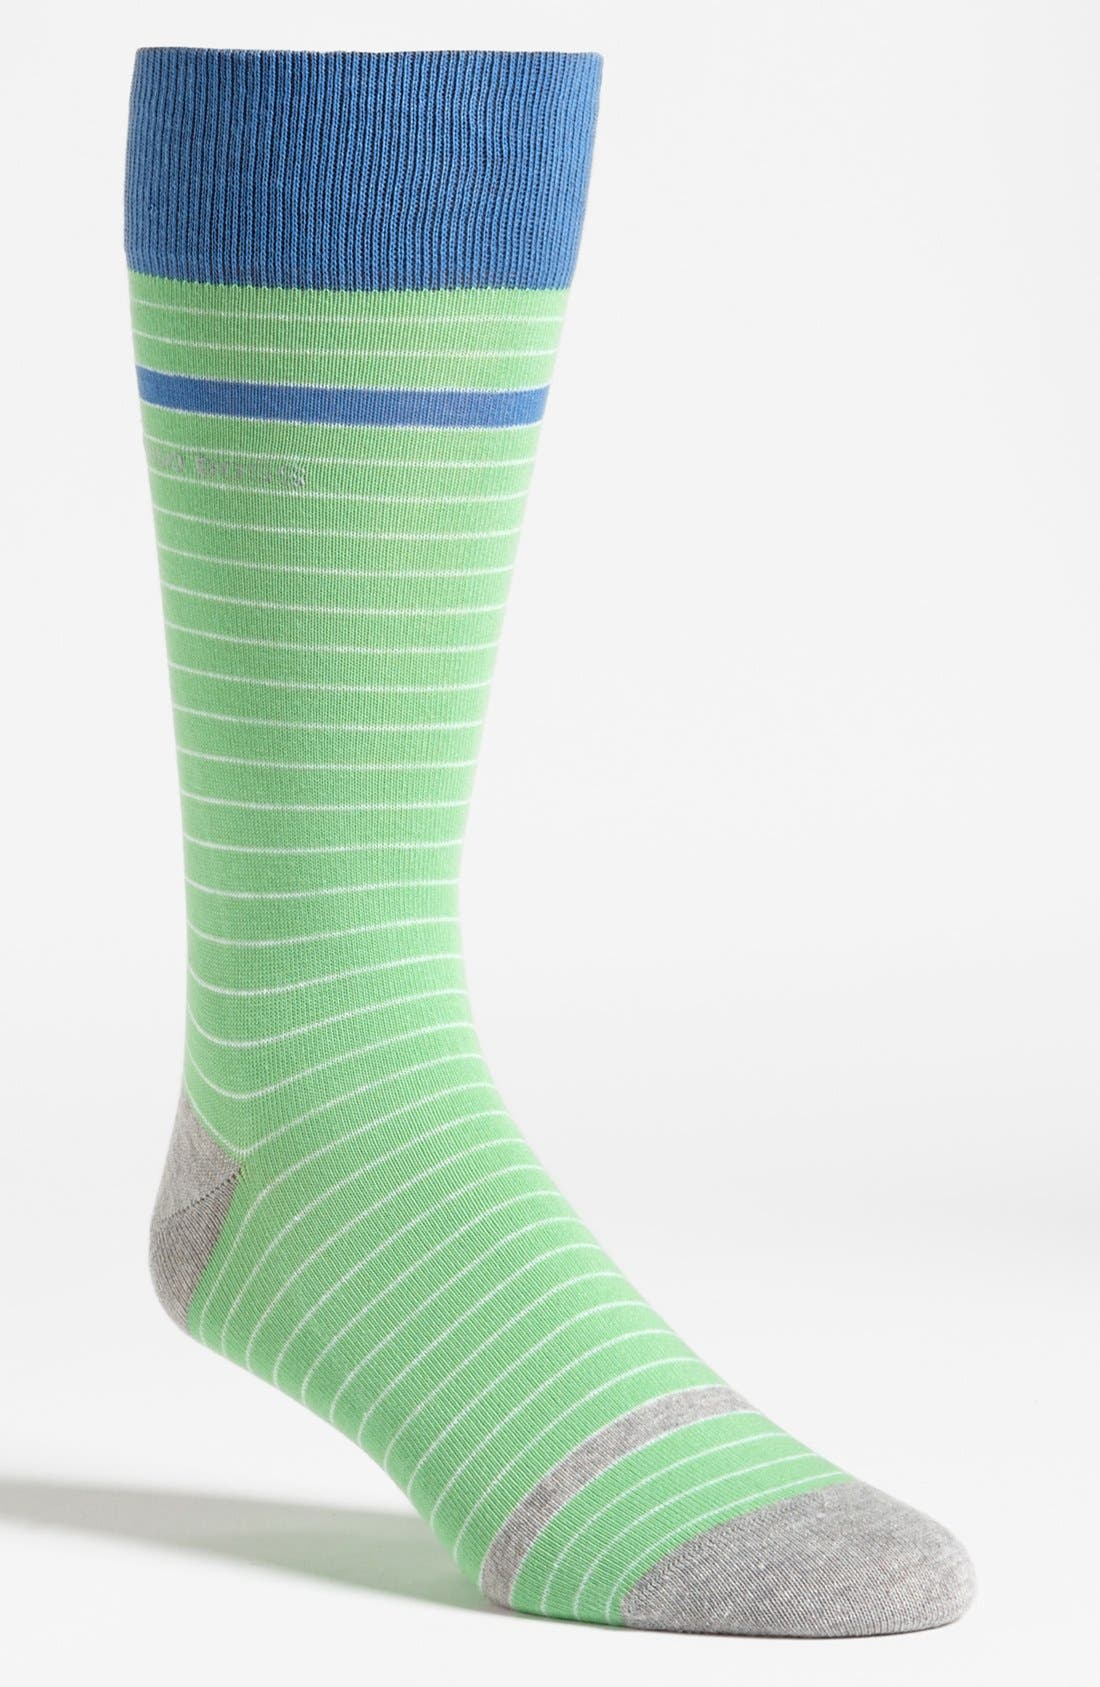 Alternate Image 1 Selected - BOSS HUGO BOSS 'RS Design' Socks